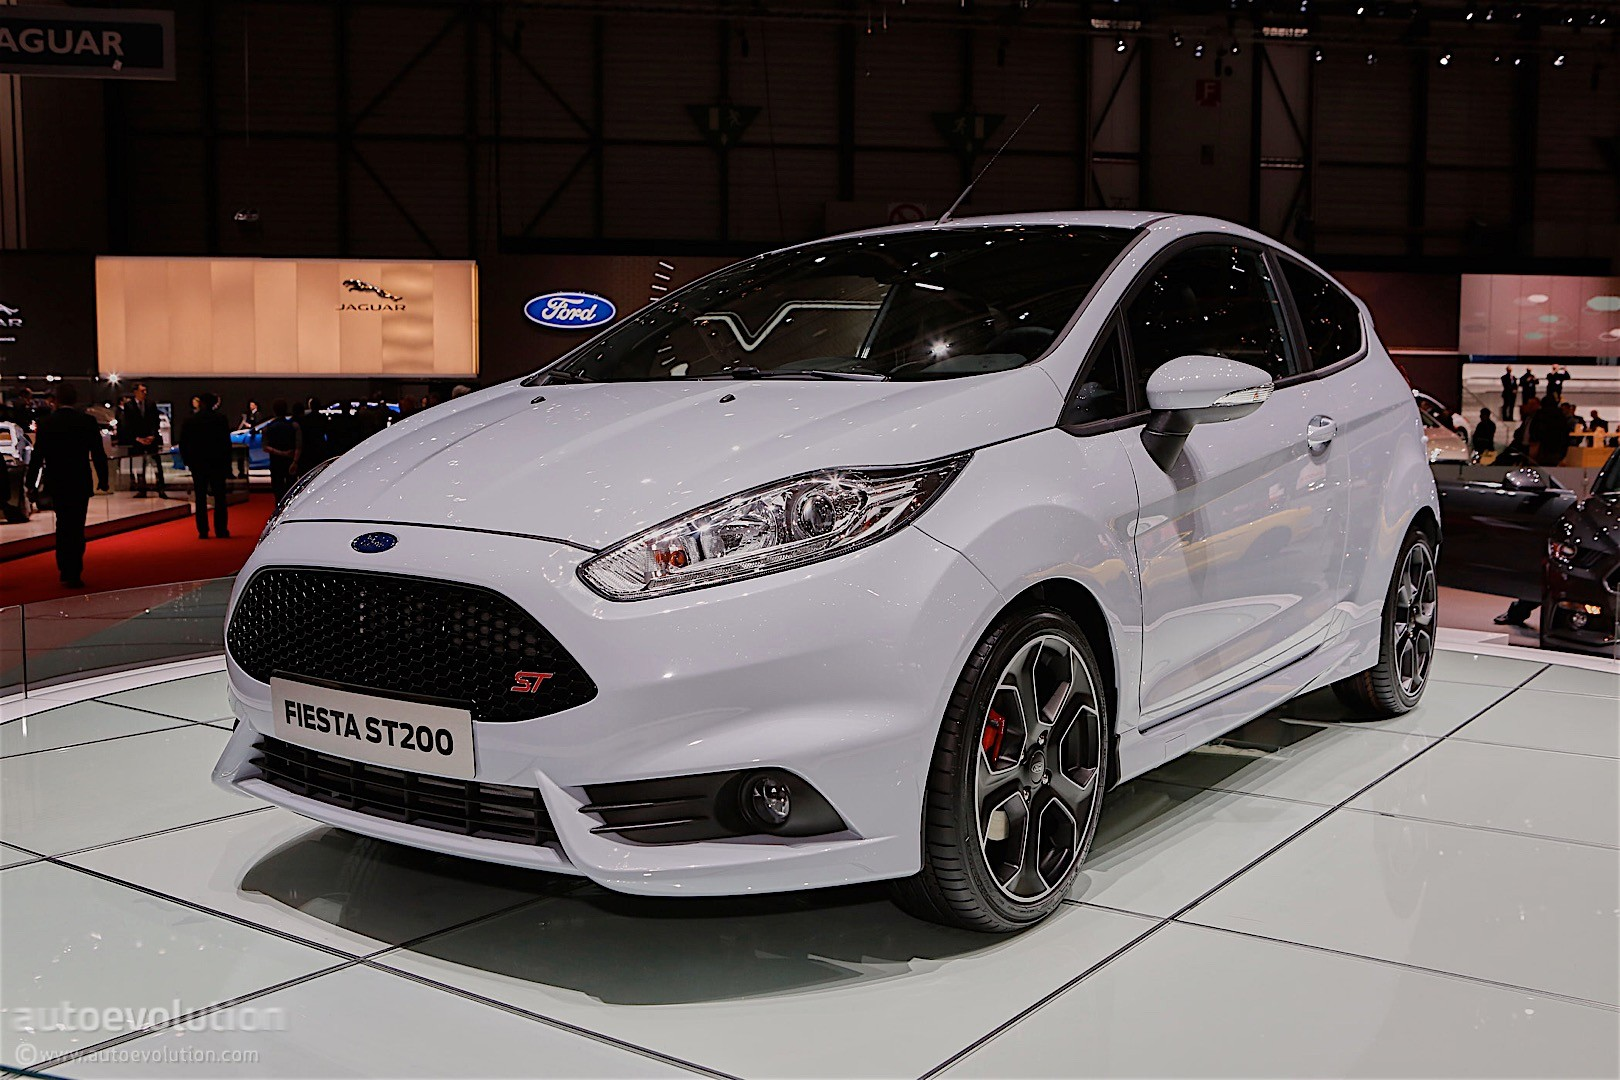 ford fiesta st200 unveiled in geneva looks just right autoevolution. Black Bedroom Furniture Sets. Home Design Ideas